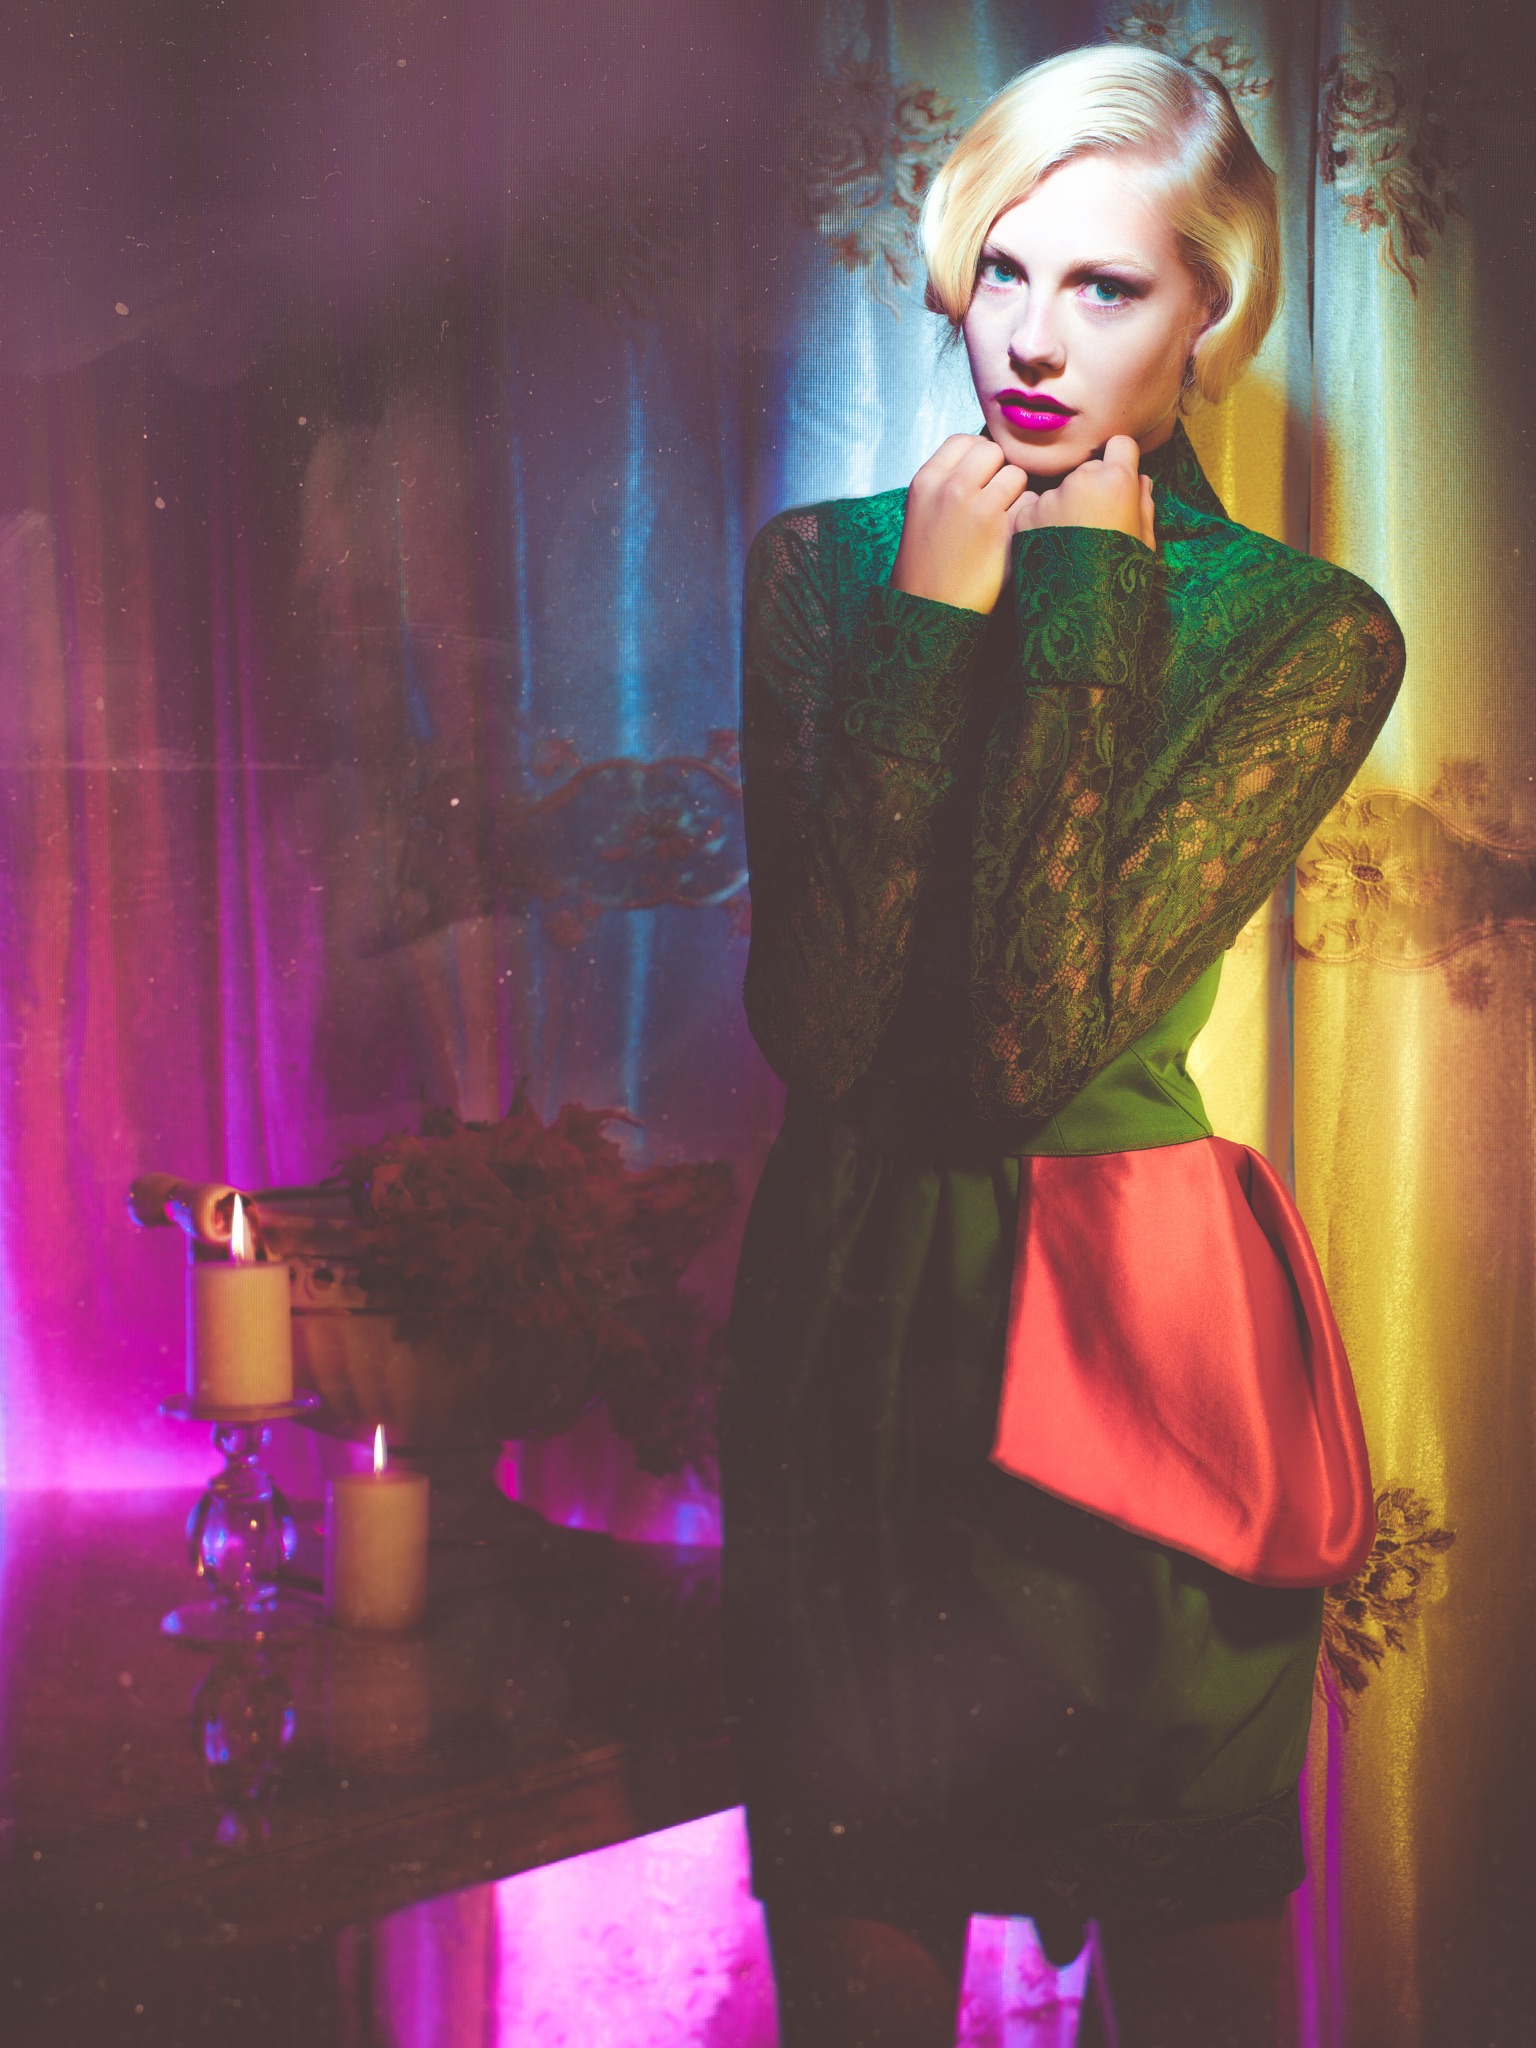 Jay McLaughlin Fall into Colour Color Access-Fashion Hanna Hultberg Lighting Gels Photoshoot Editorial Fashion